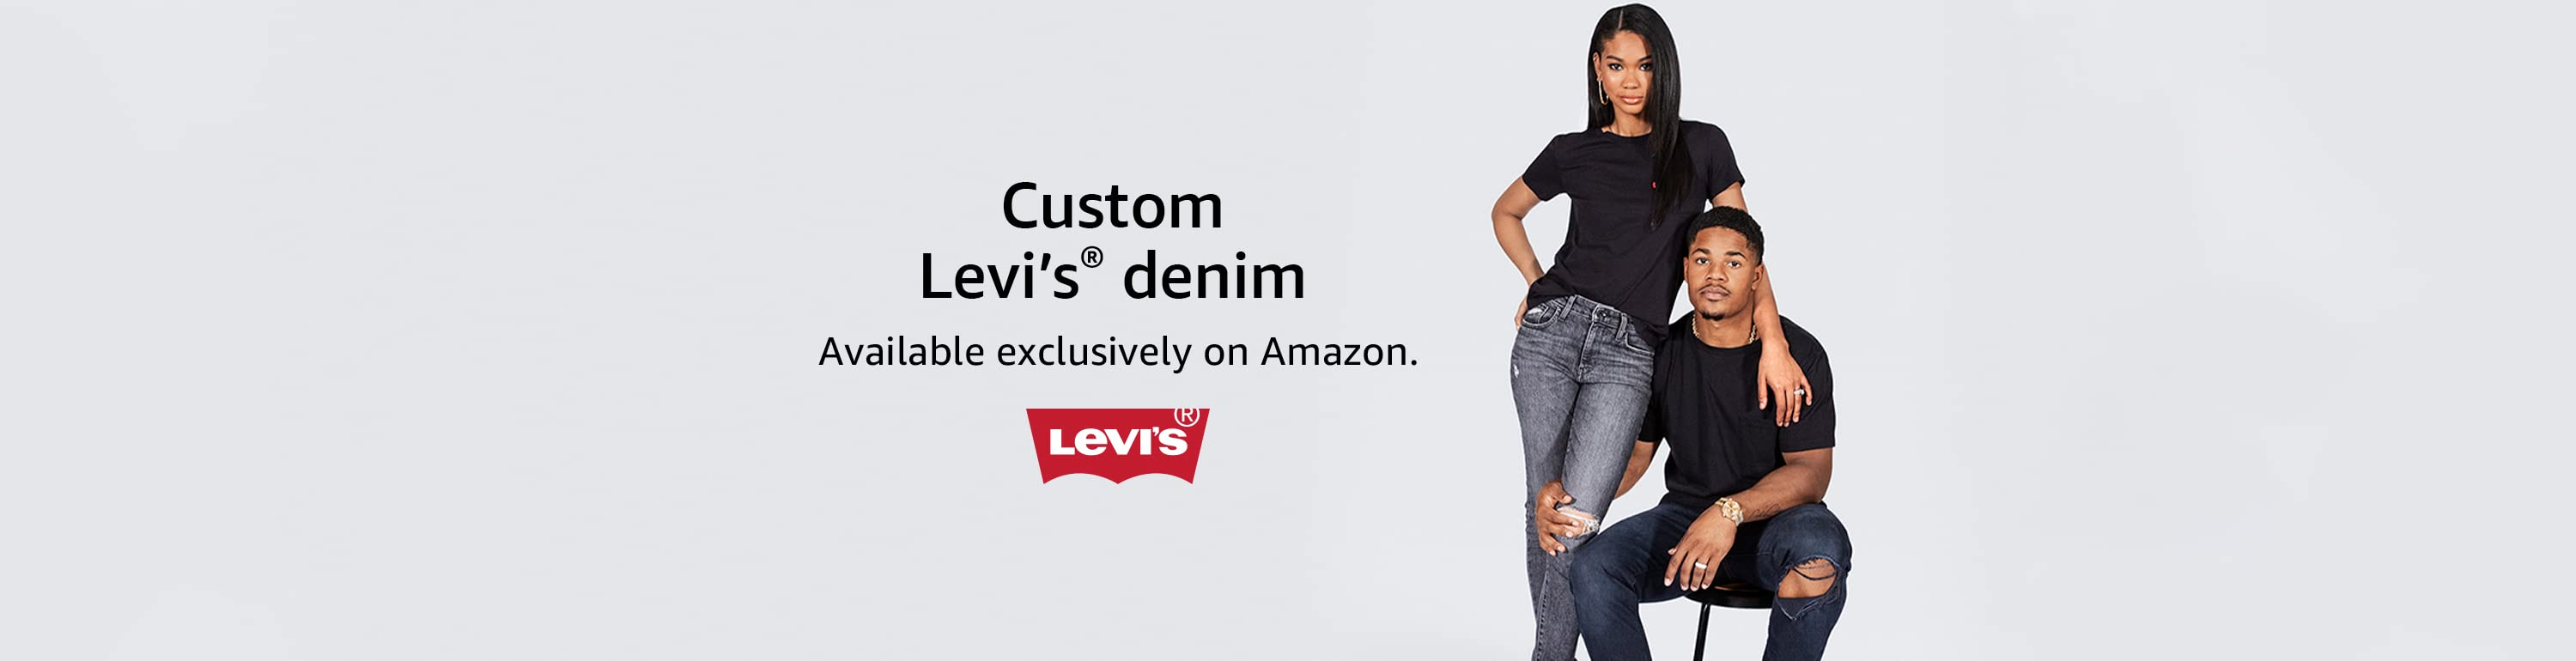 Custom Levi's denim